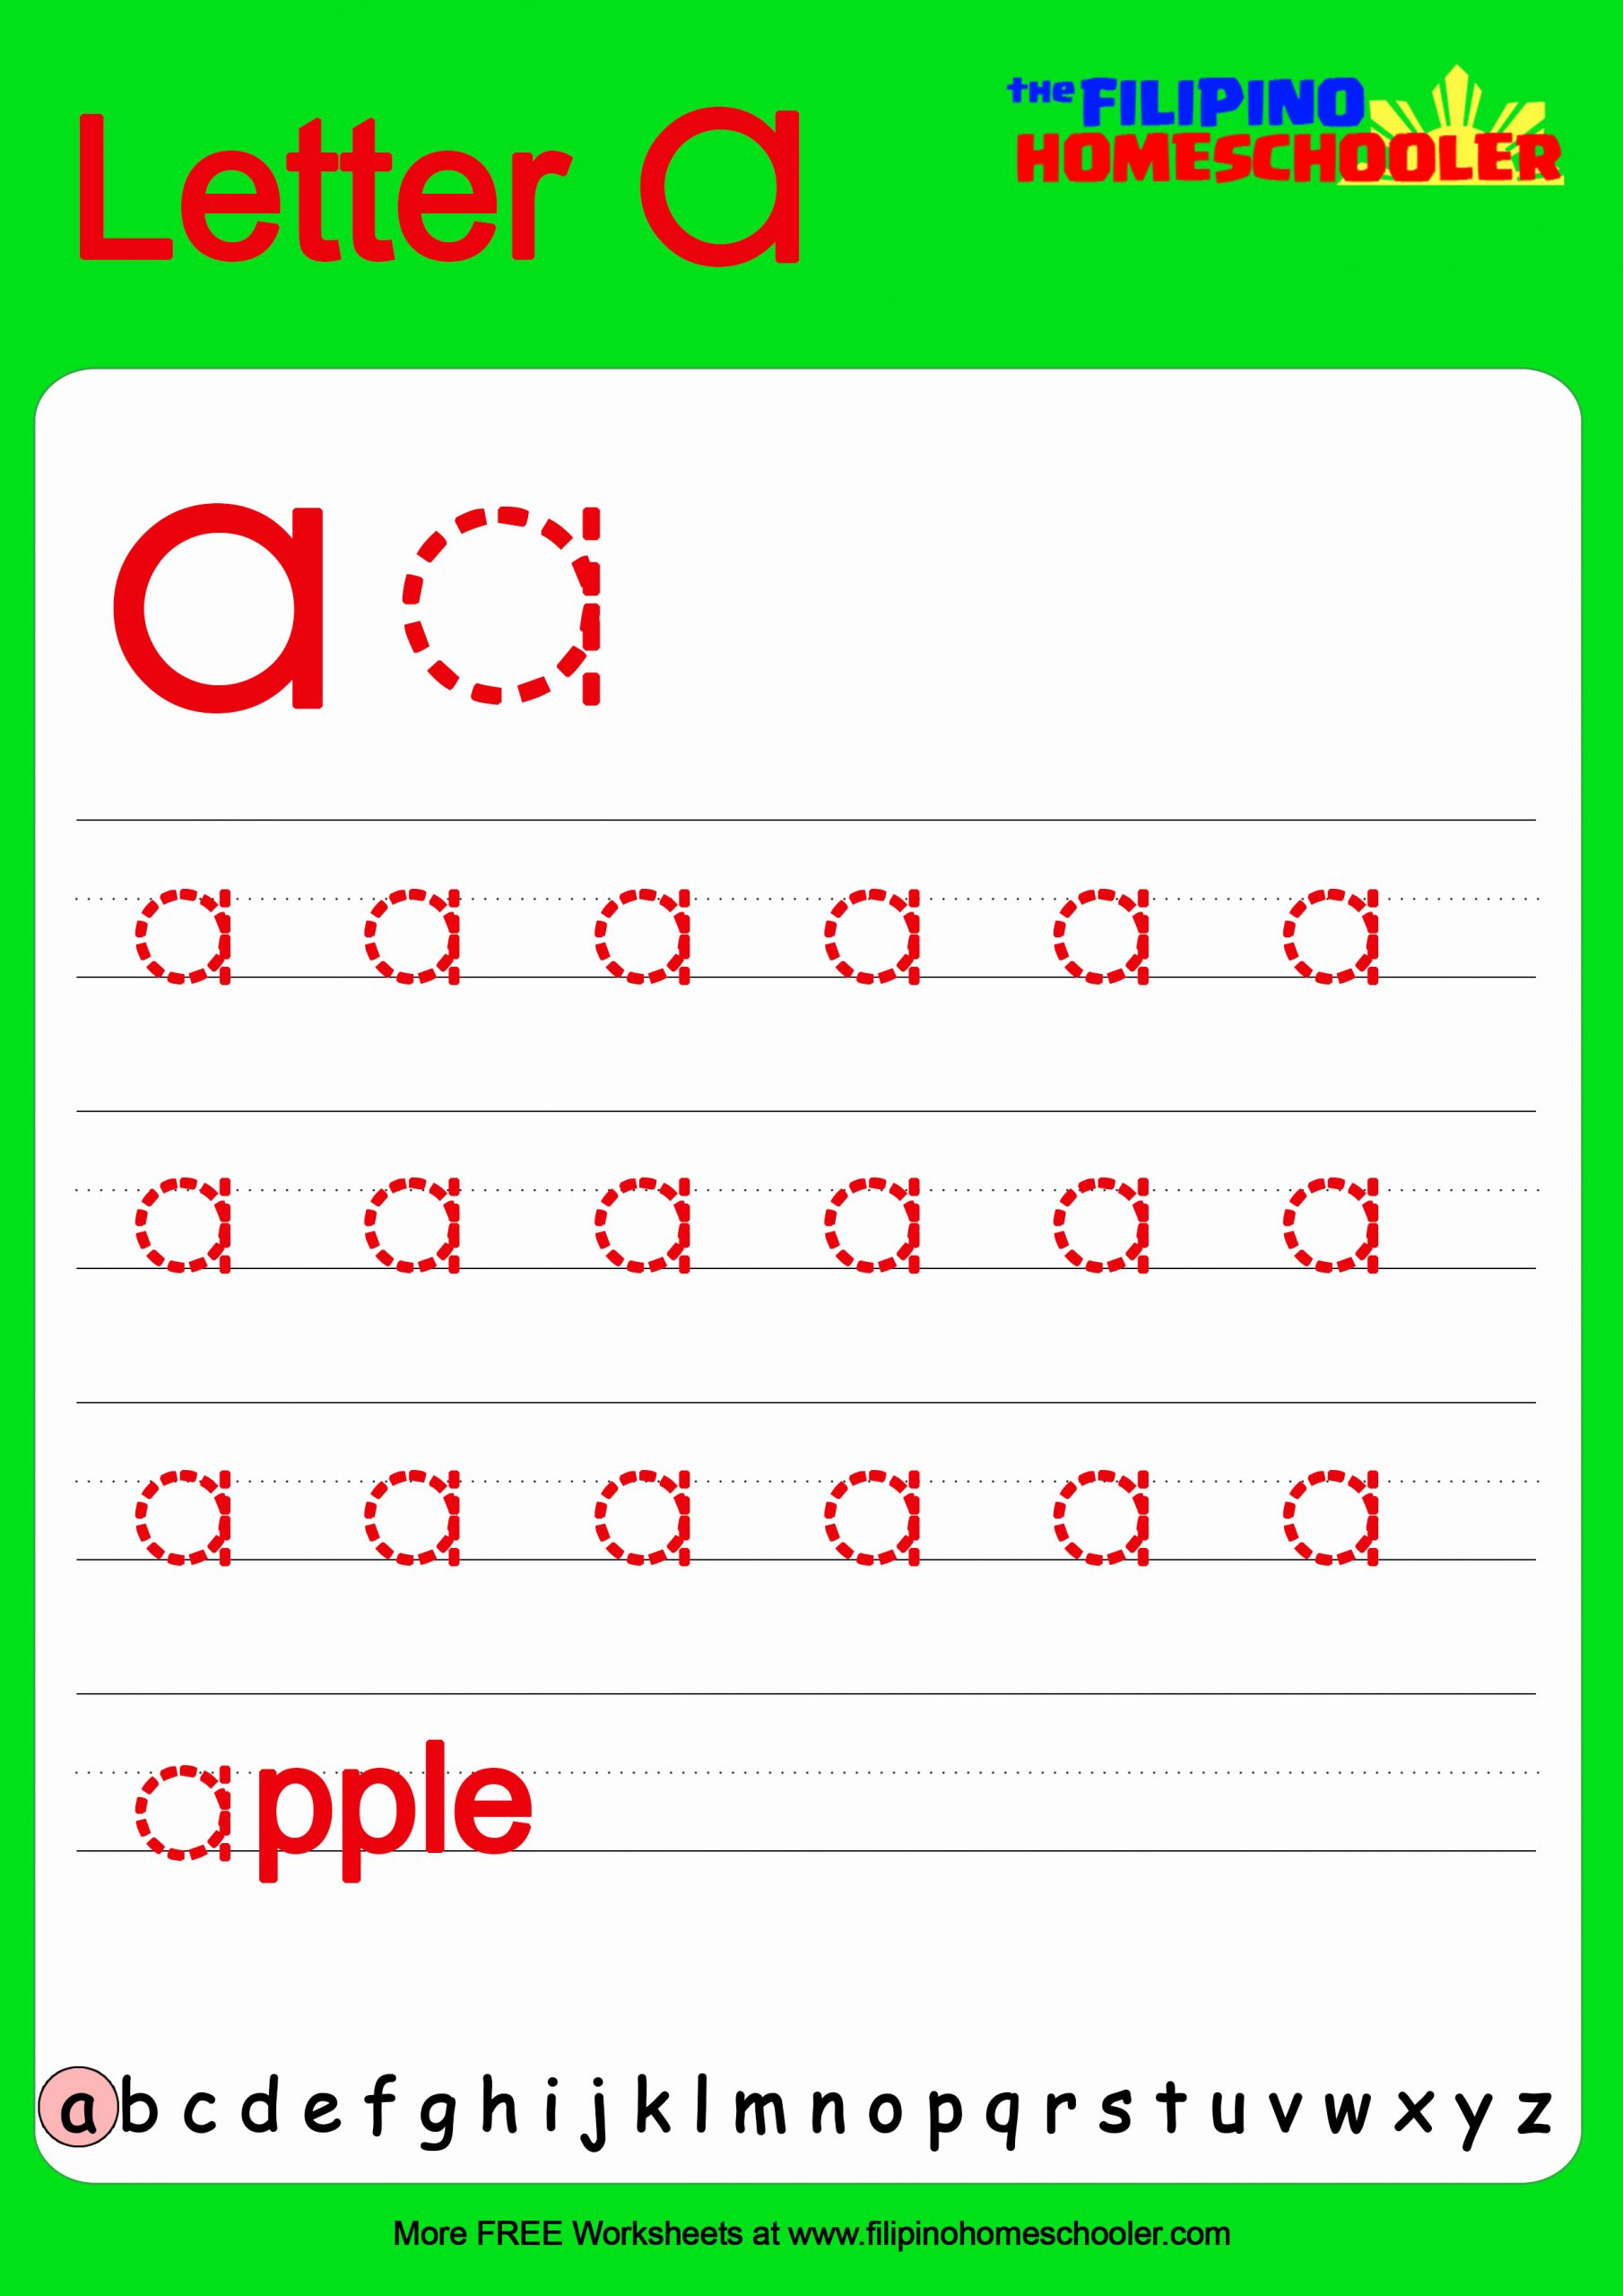 Lowercase Alphabet Tracing Worksheets Lovely Free Lowercase Letter Tracing Worksheets — the Filipino